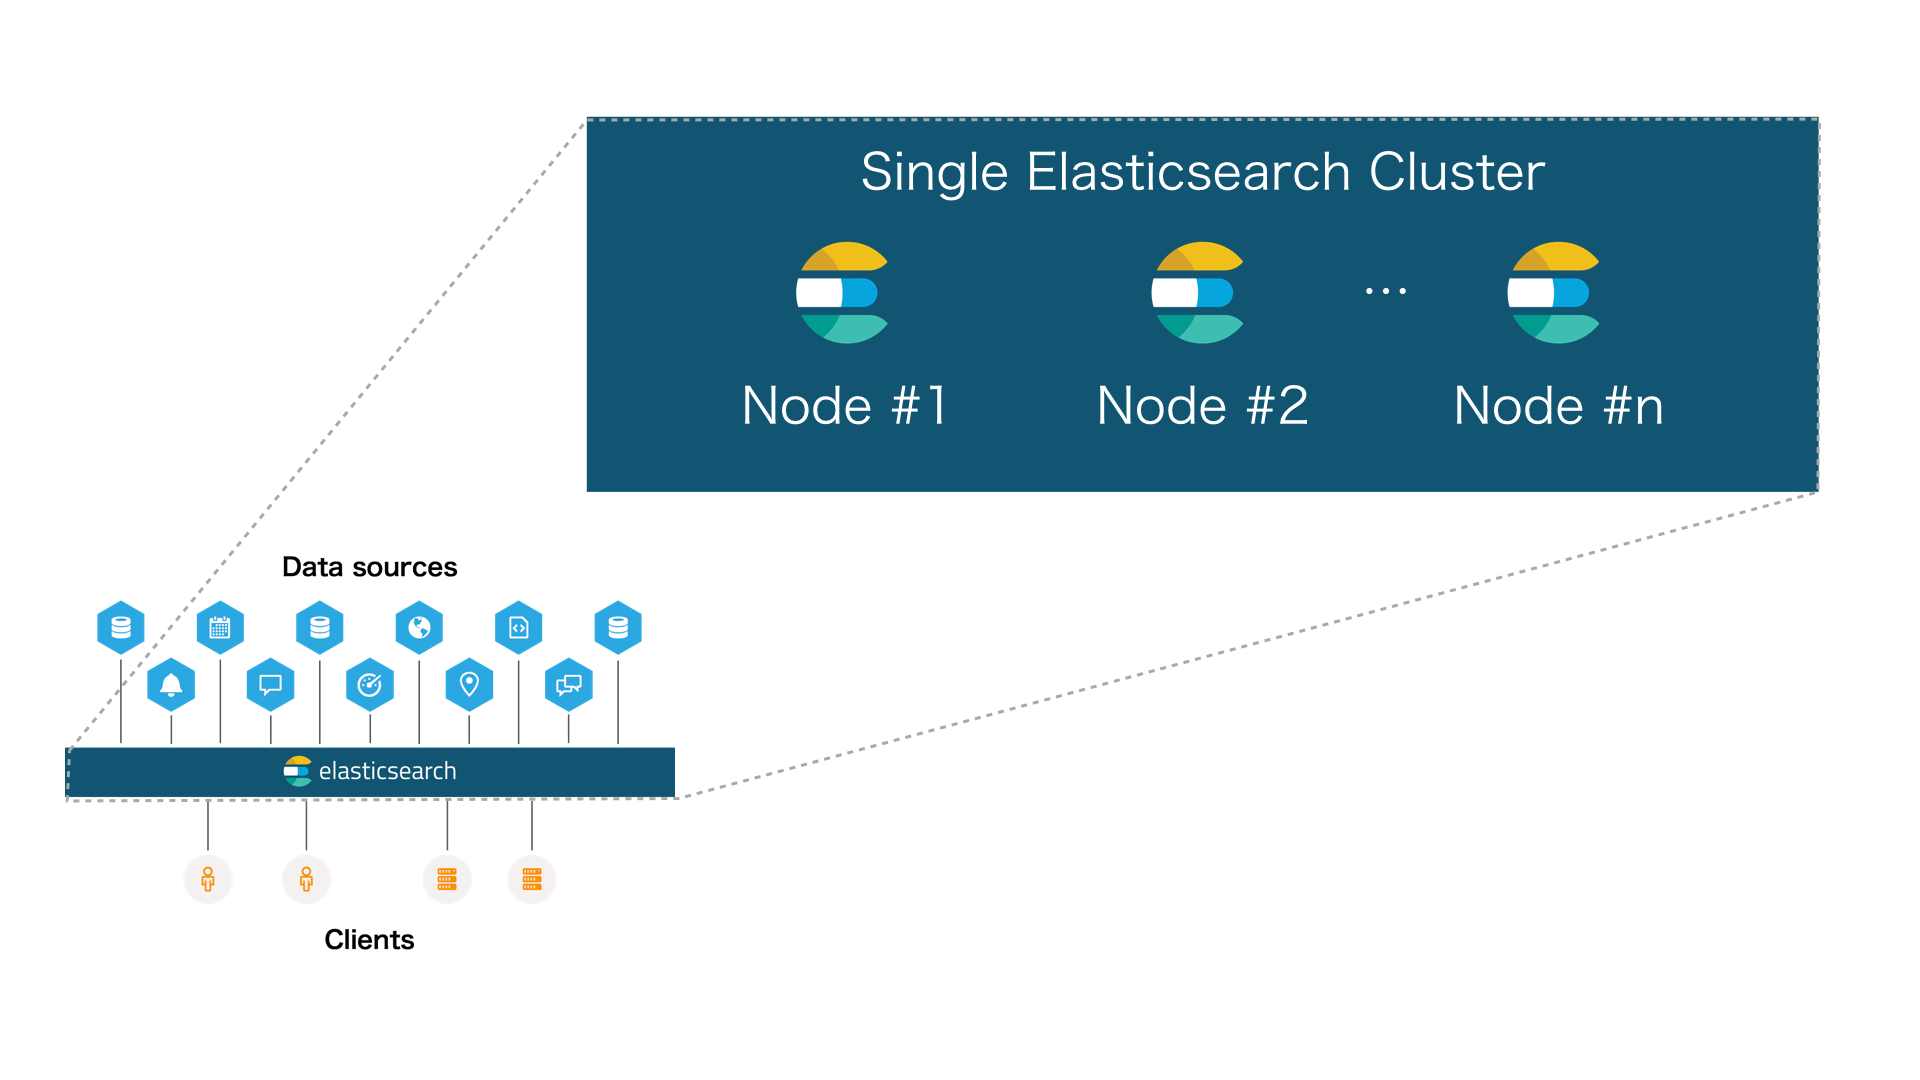 single elasticsearch cluster